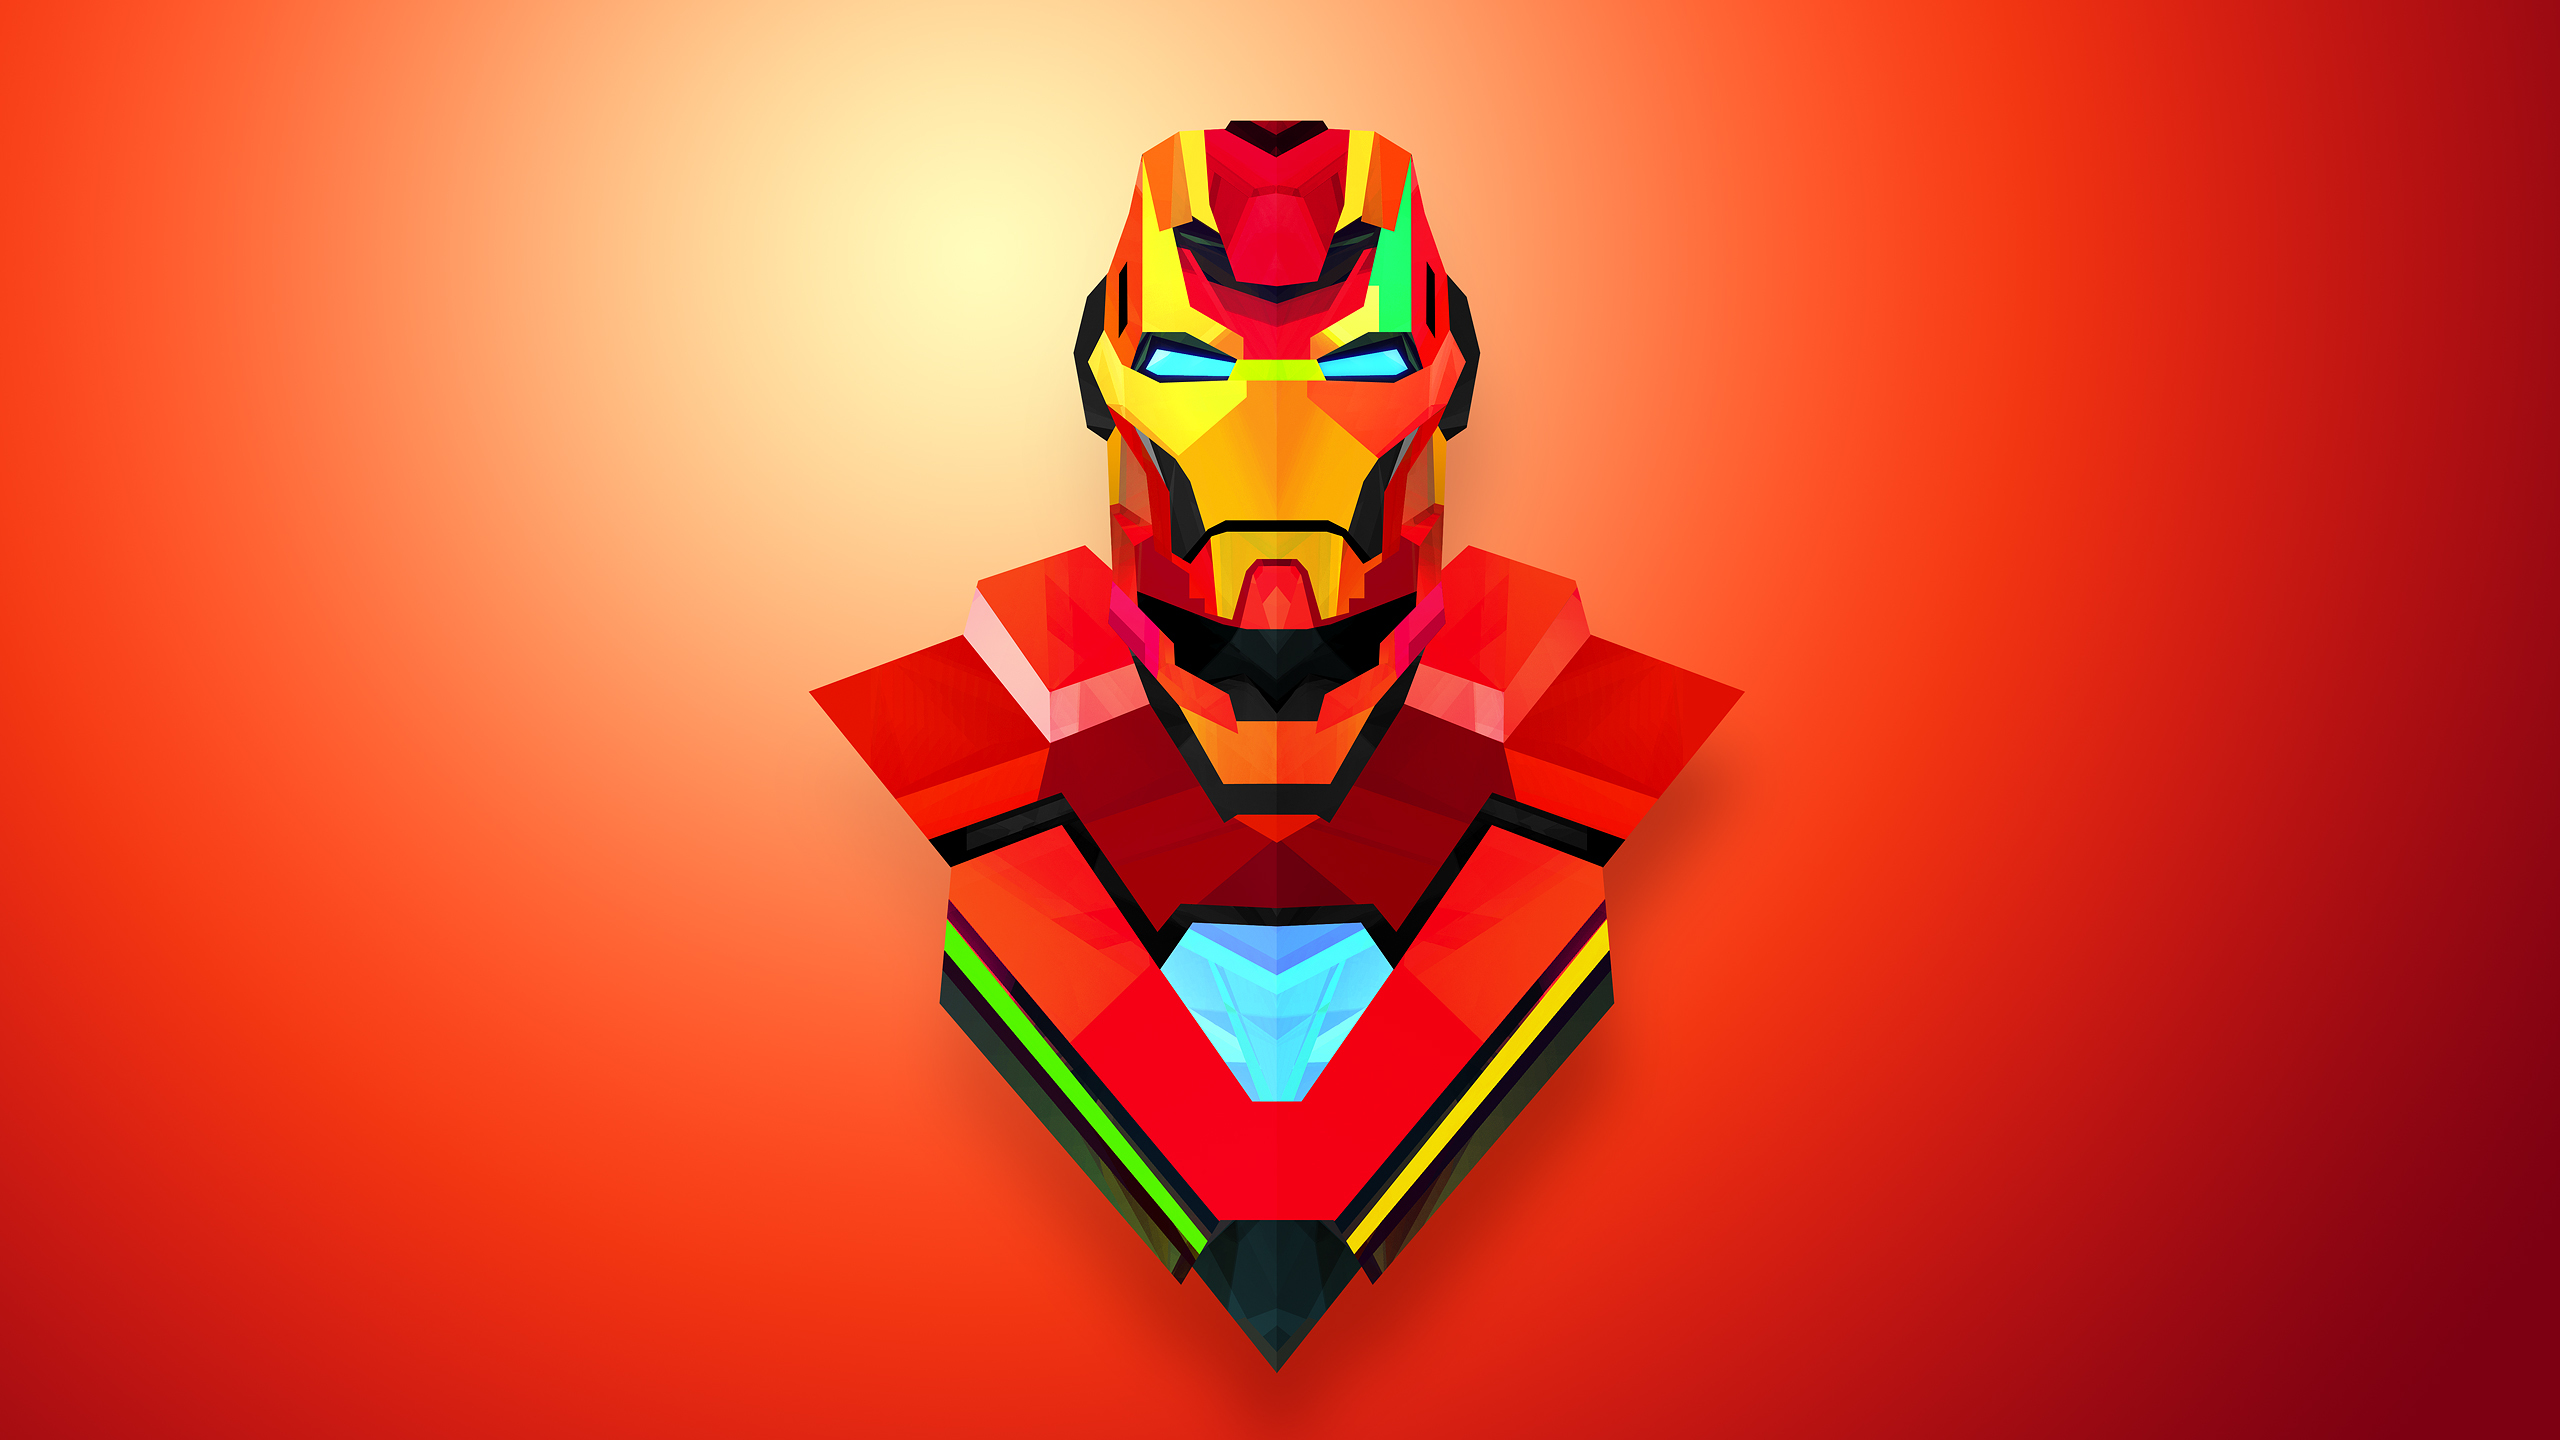 Cartoon Iron Man Wallpaper